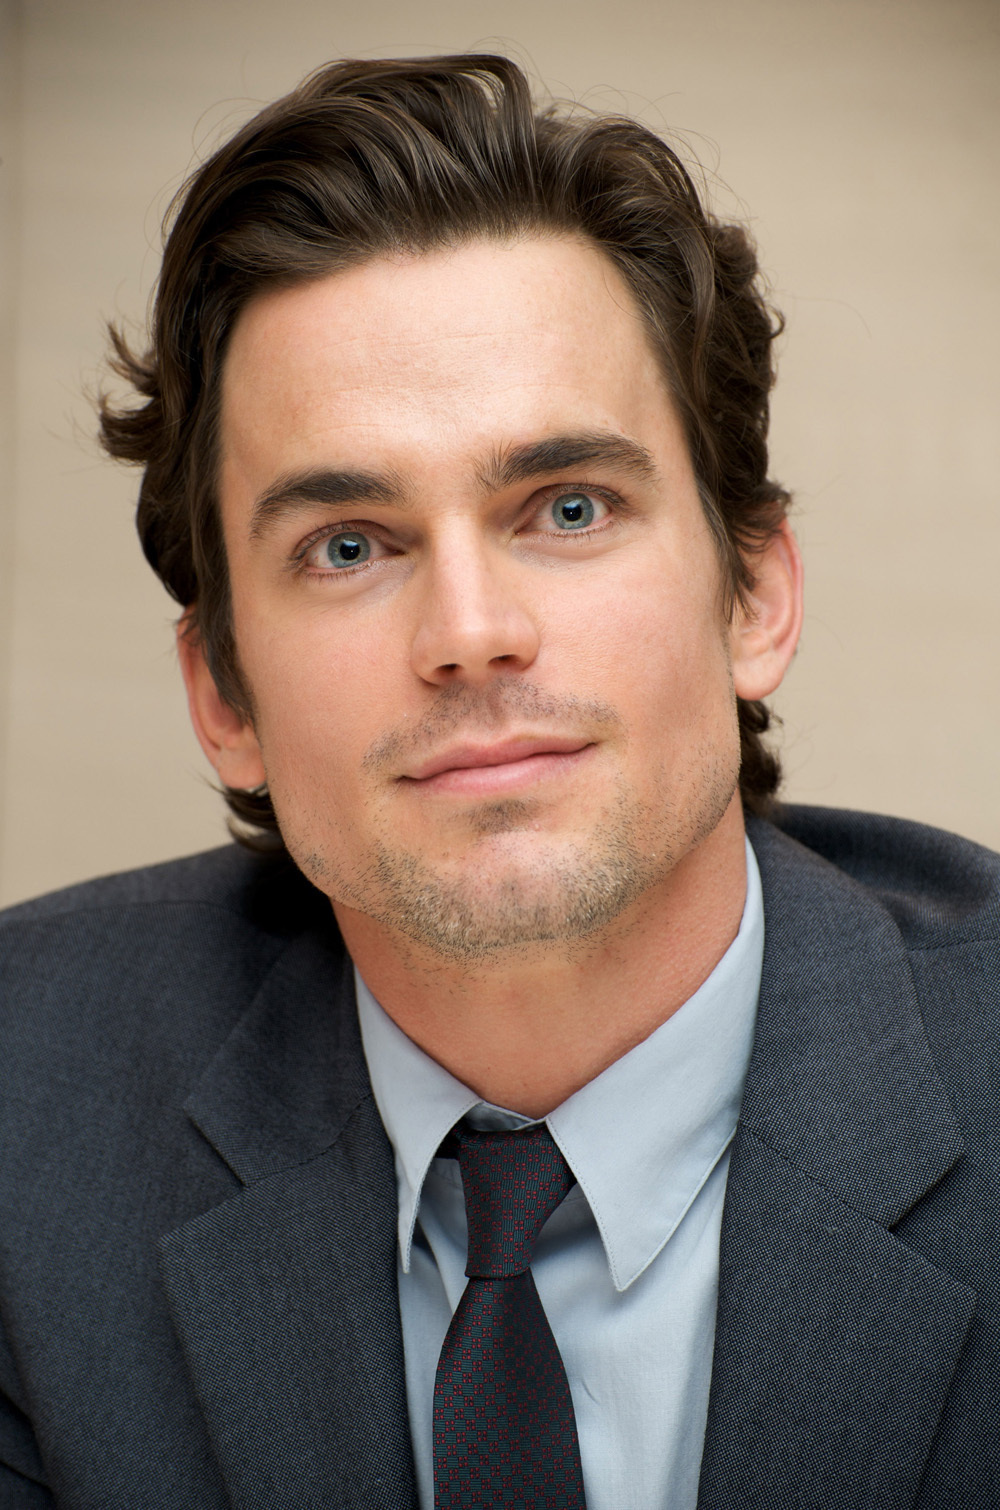 http://img2.wikia.nocookie.net/__cb20121115183608/glee/it/images/a/a6/Mattbomer.jpg